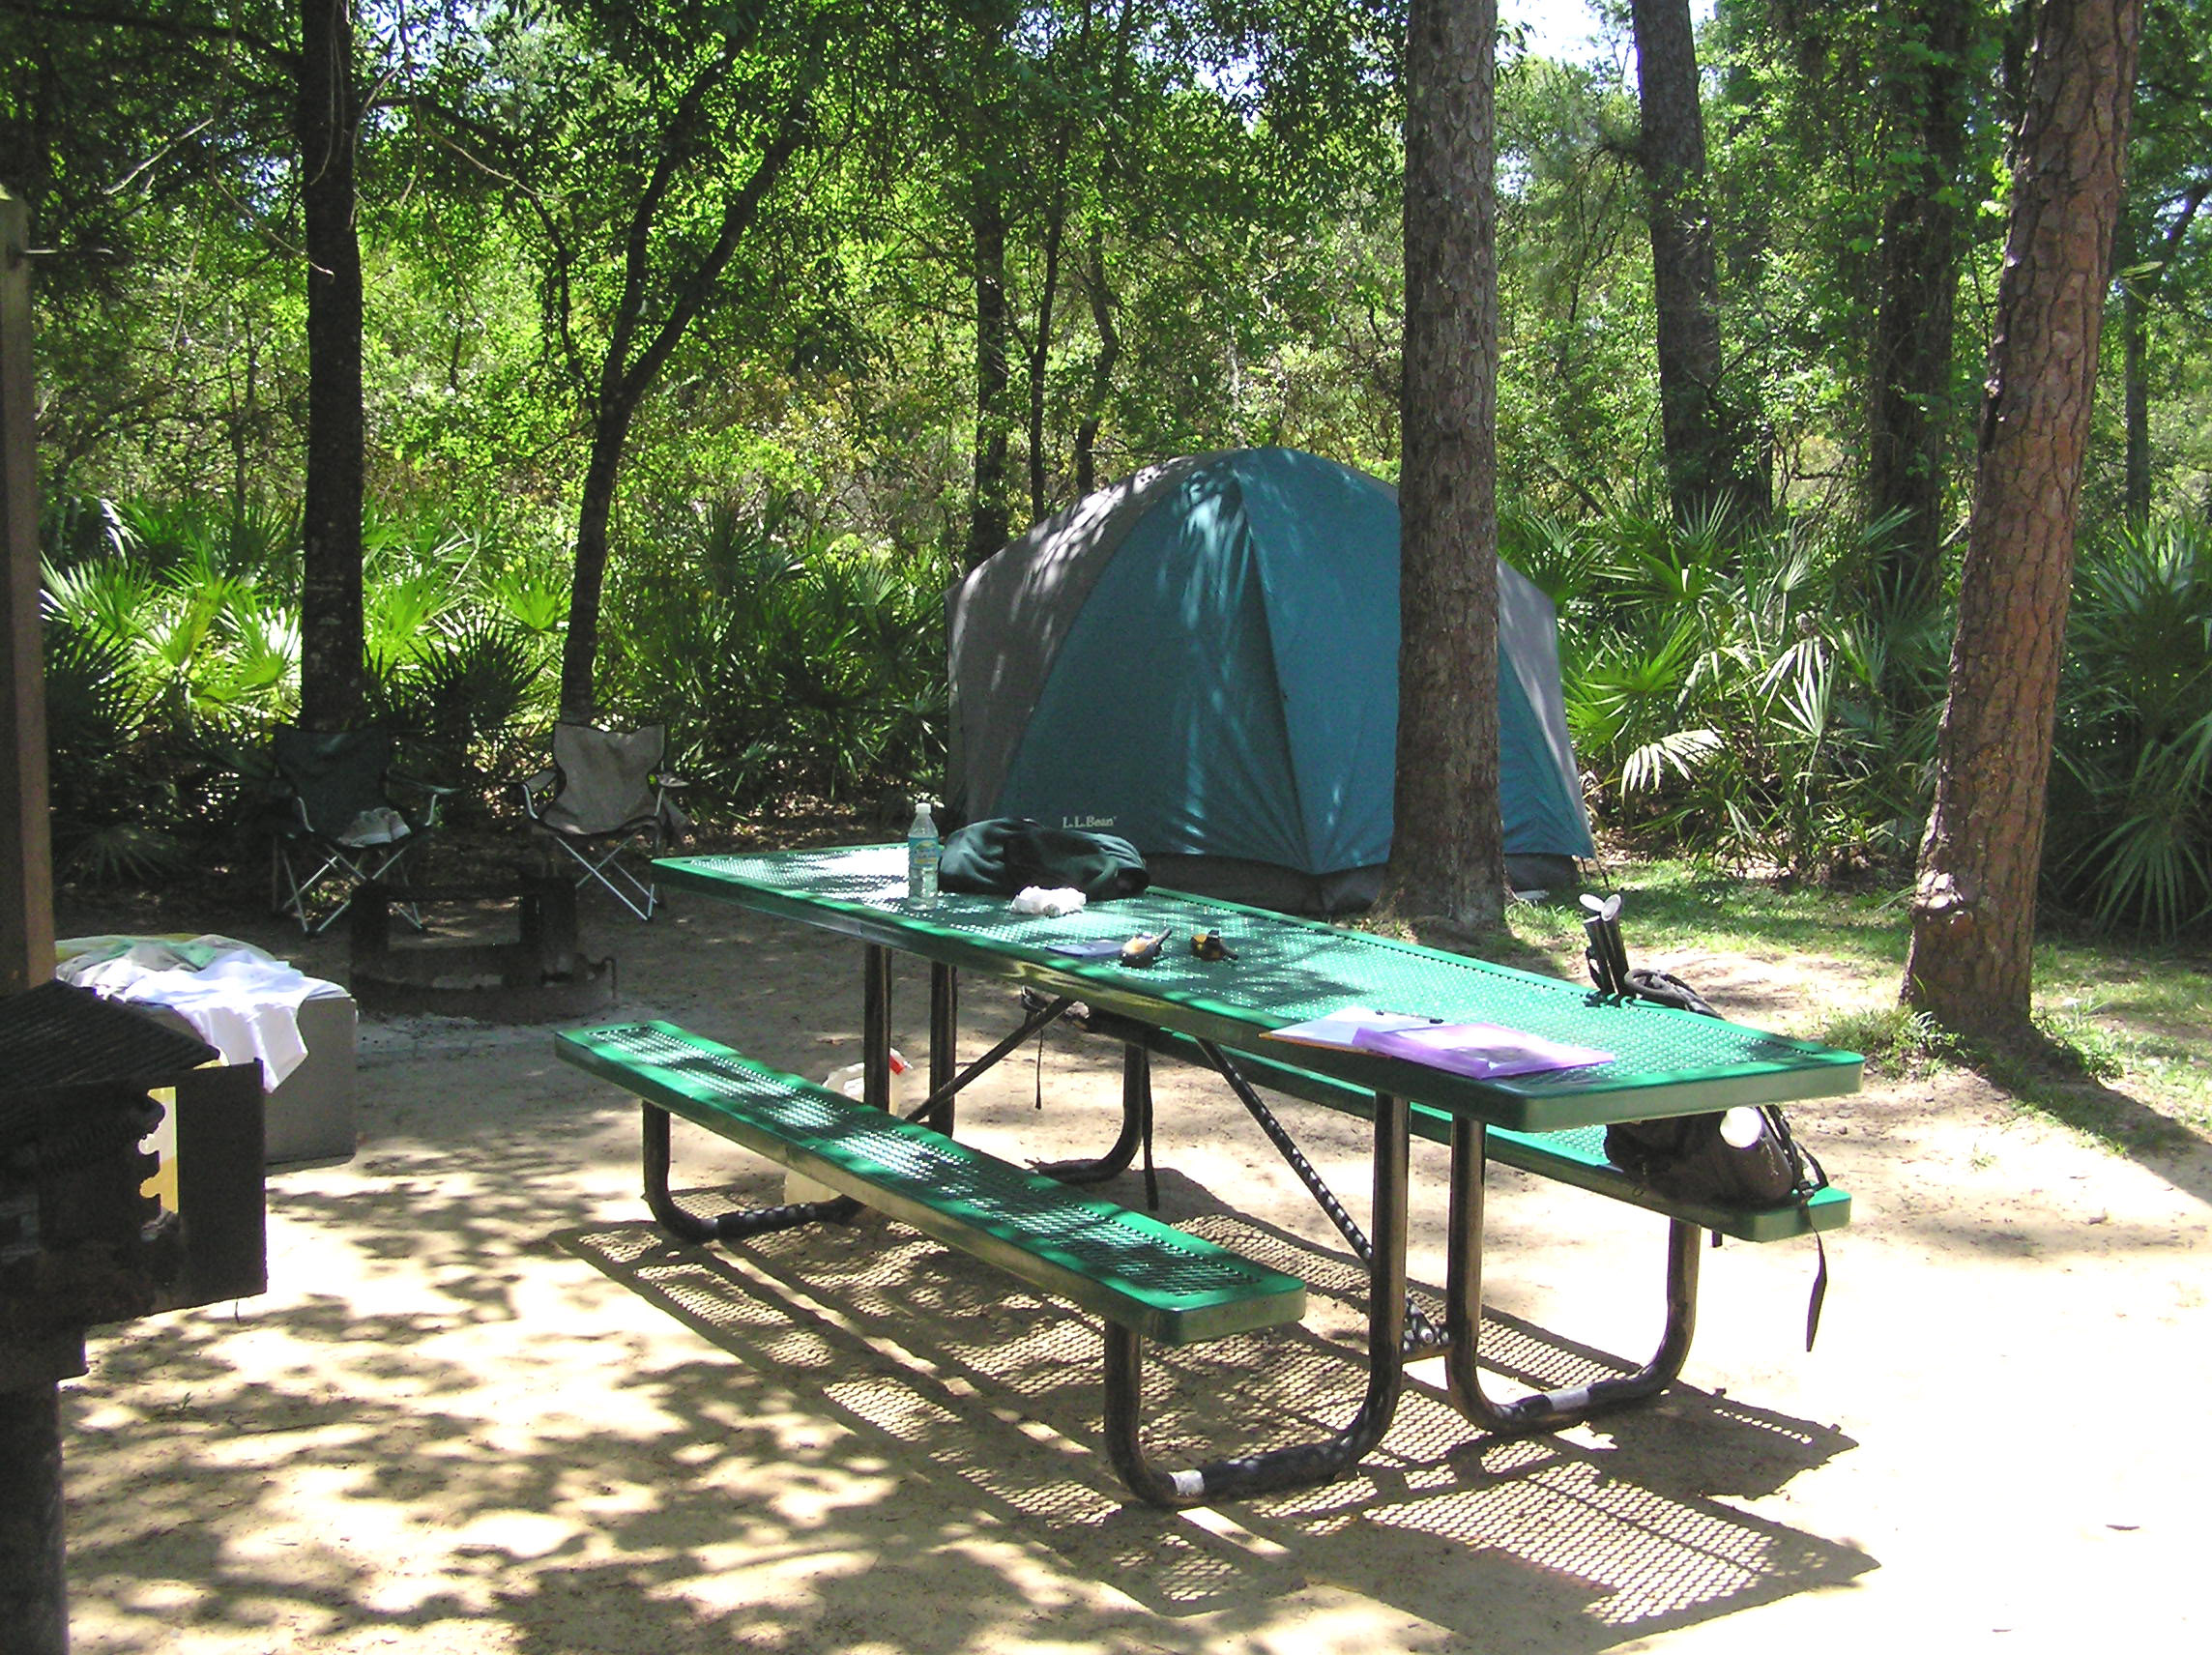 Camping at Juniper Springs